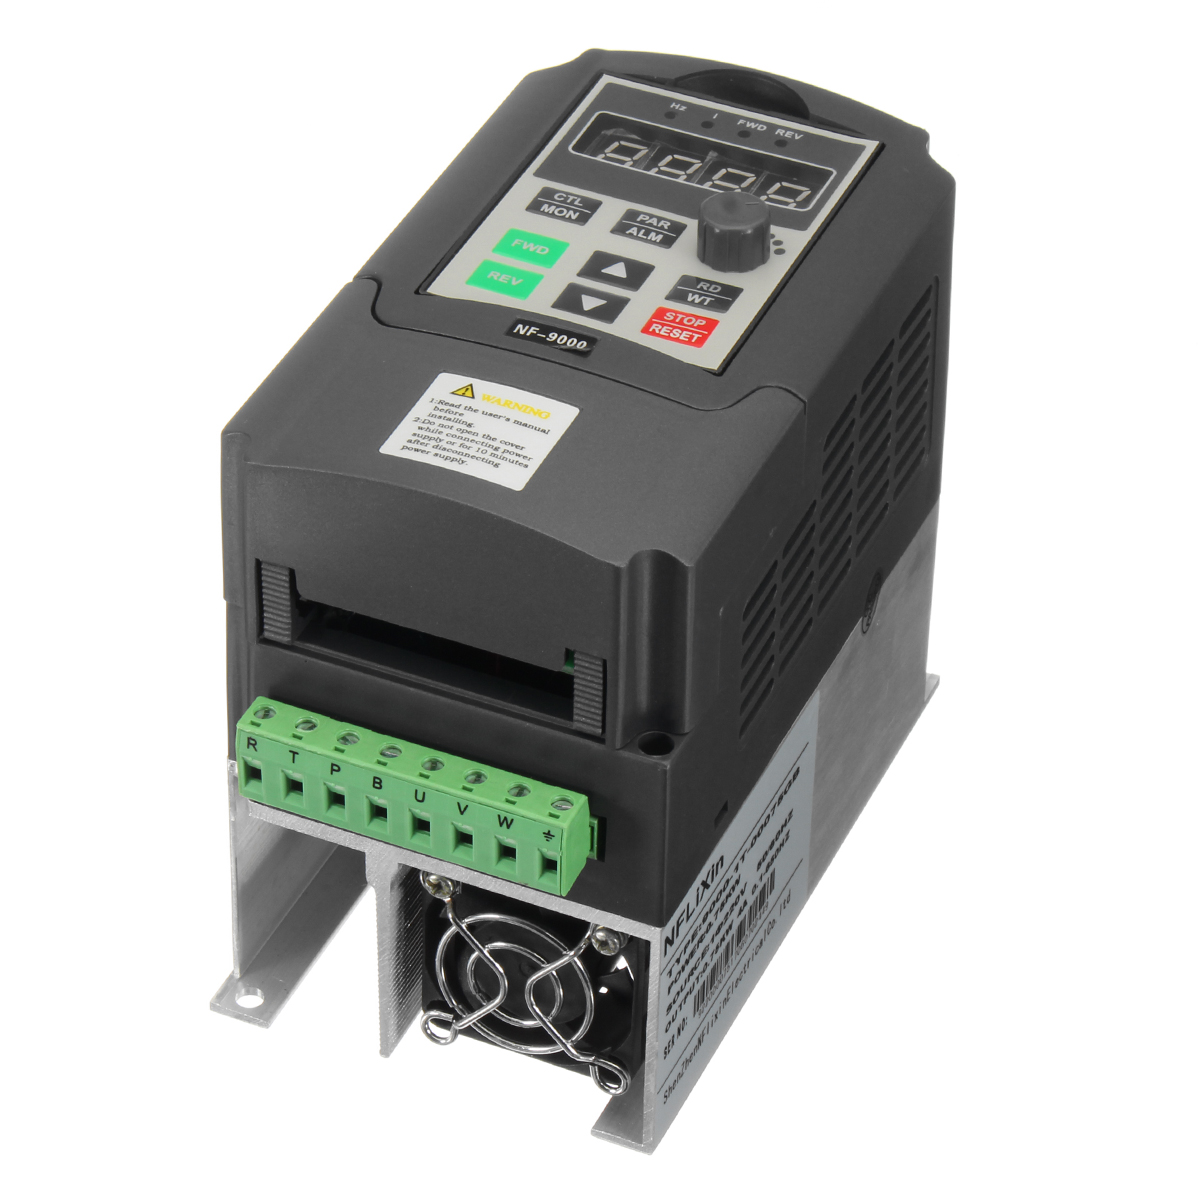 220v 075kw 4a Single Phase Variable Speed Motor Drive The Solidstate Circuitry Of A Variablefrequency Can Be Frequency Converter